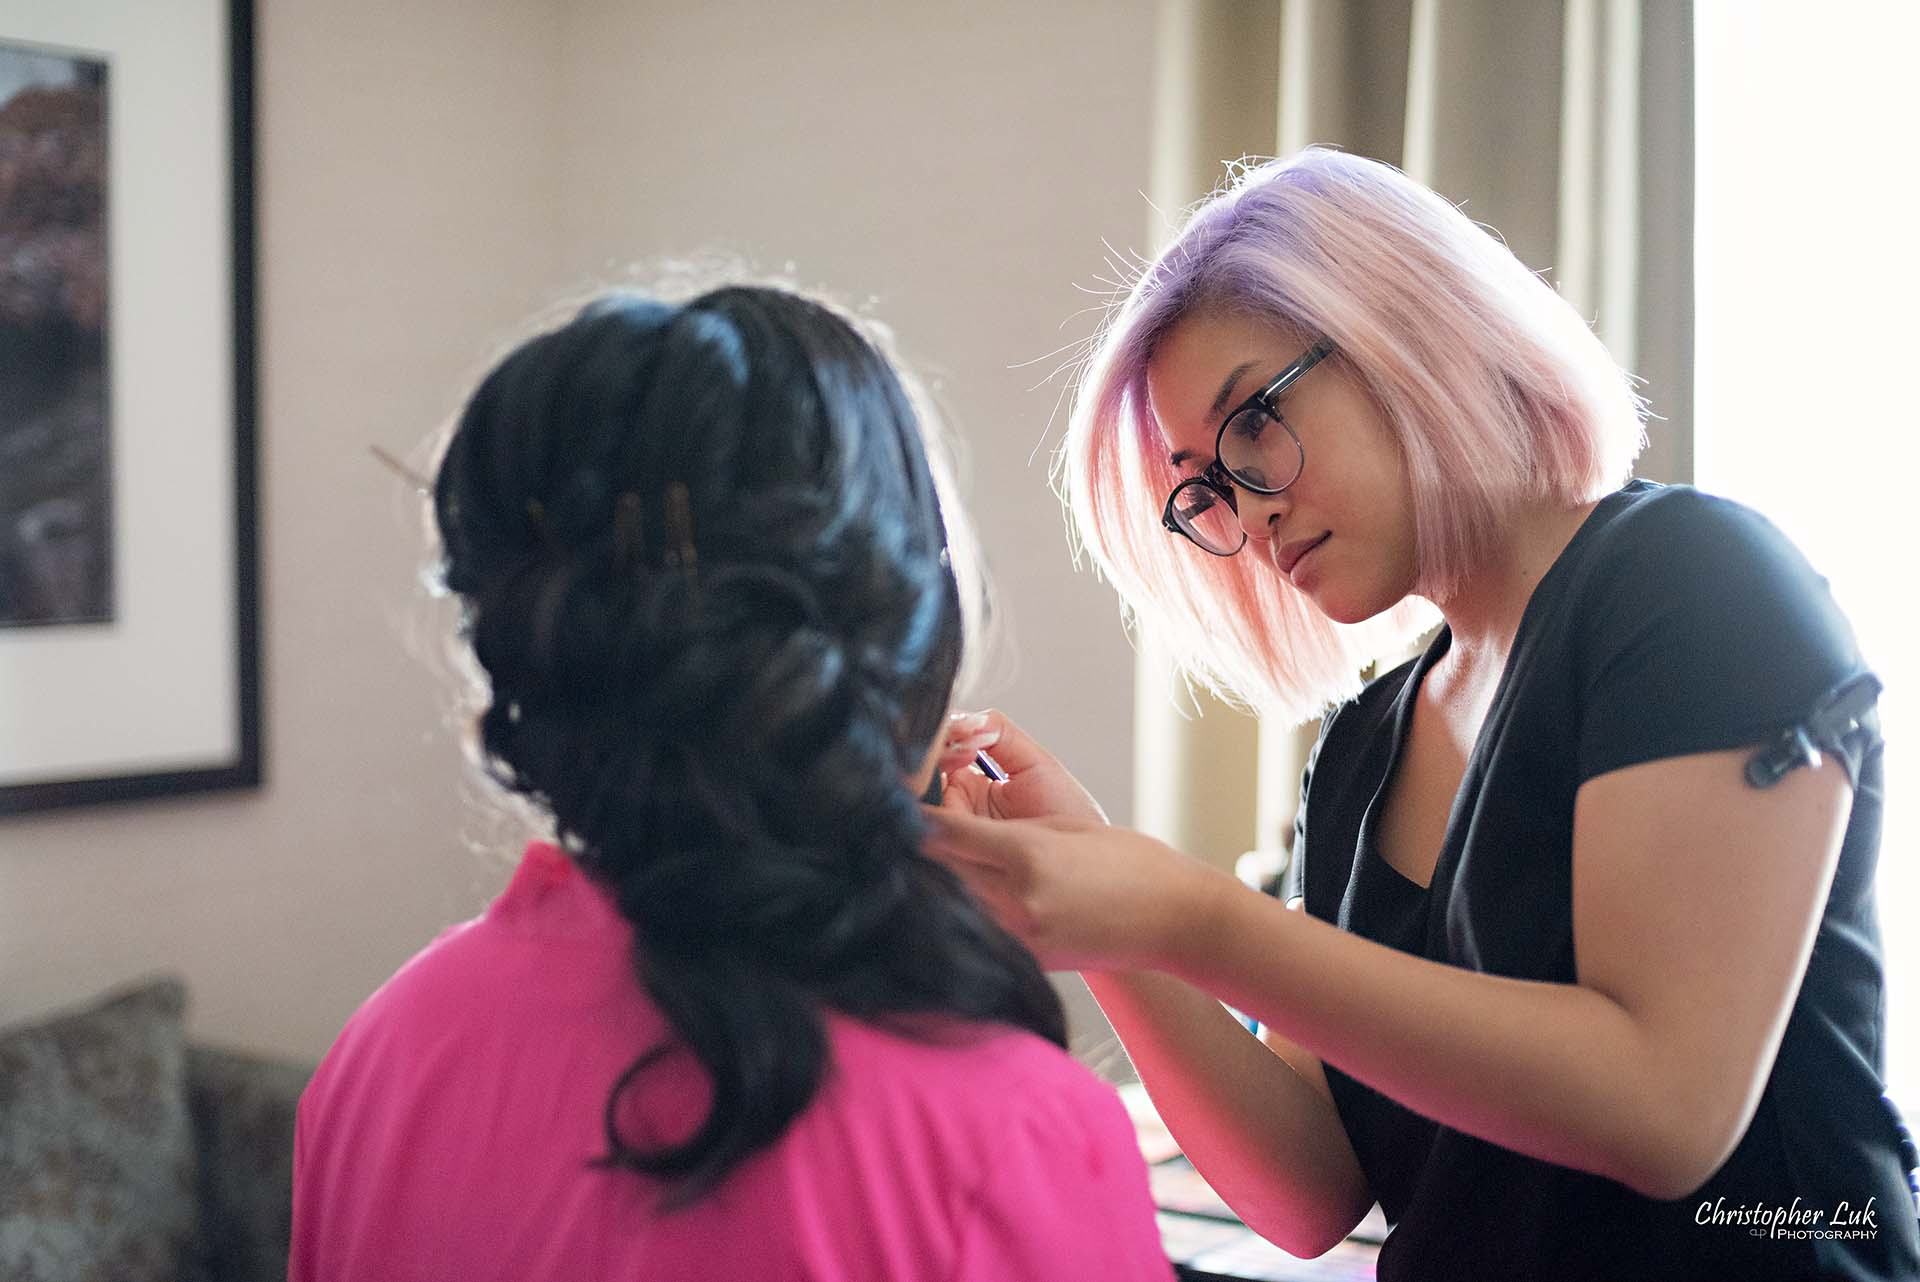 Christopher Luk Toronto Wedding Photographer Hotel Bride Getting Ready Details Judy Lim Mobile Bridal Hair Stylist Makeup Artist